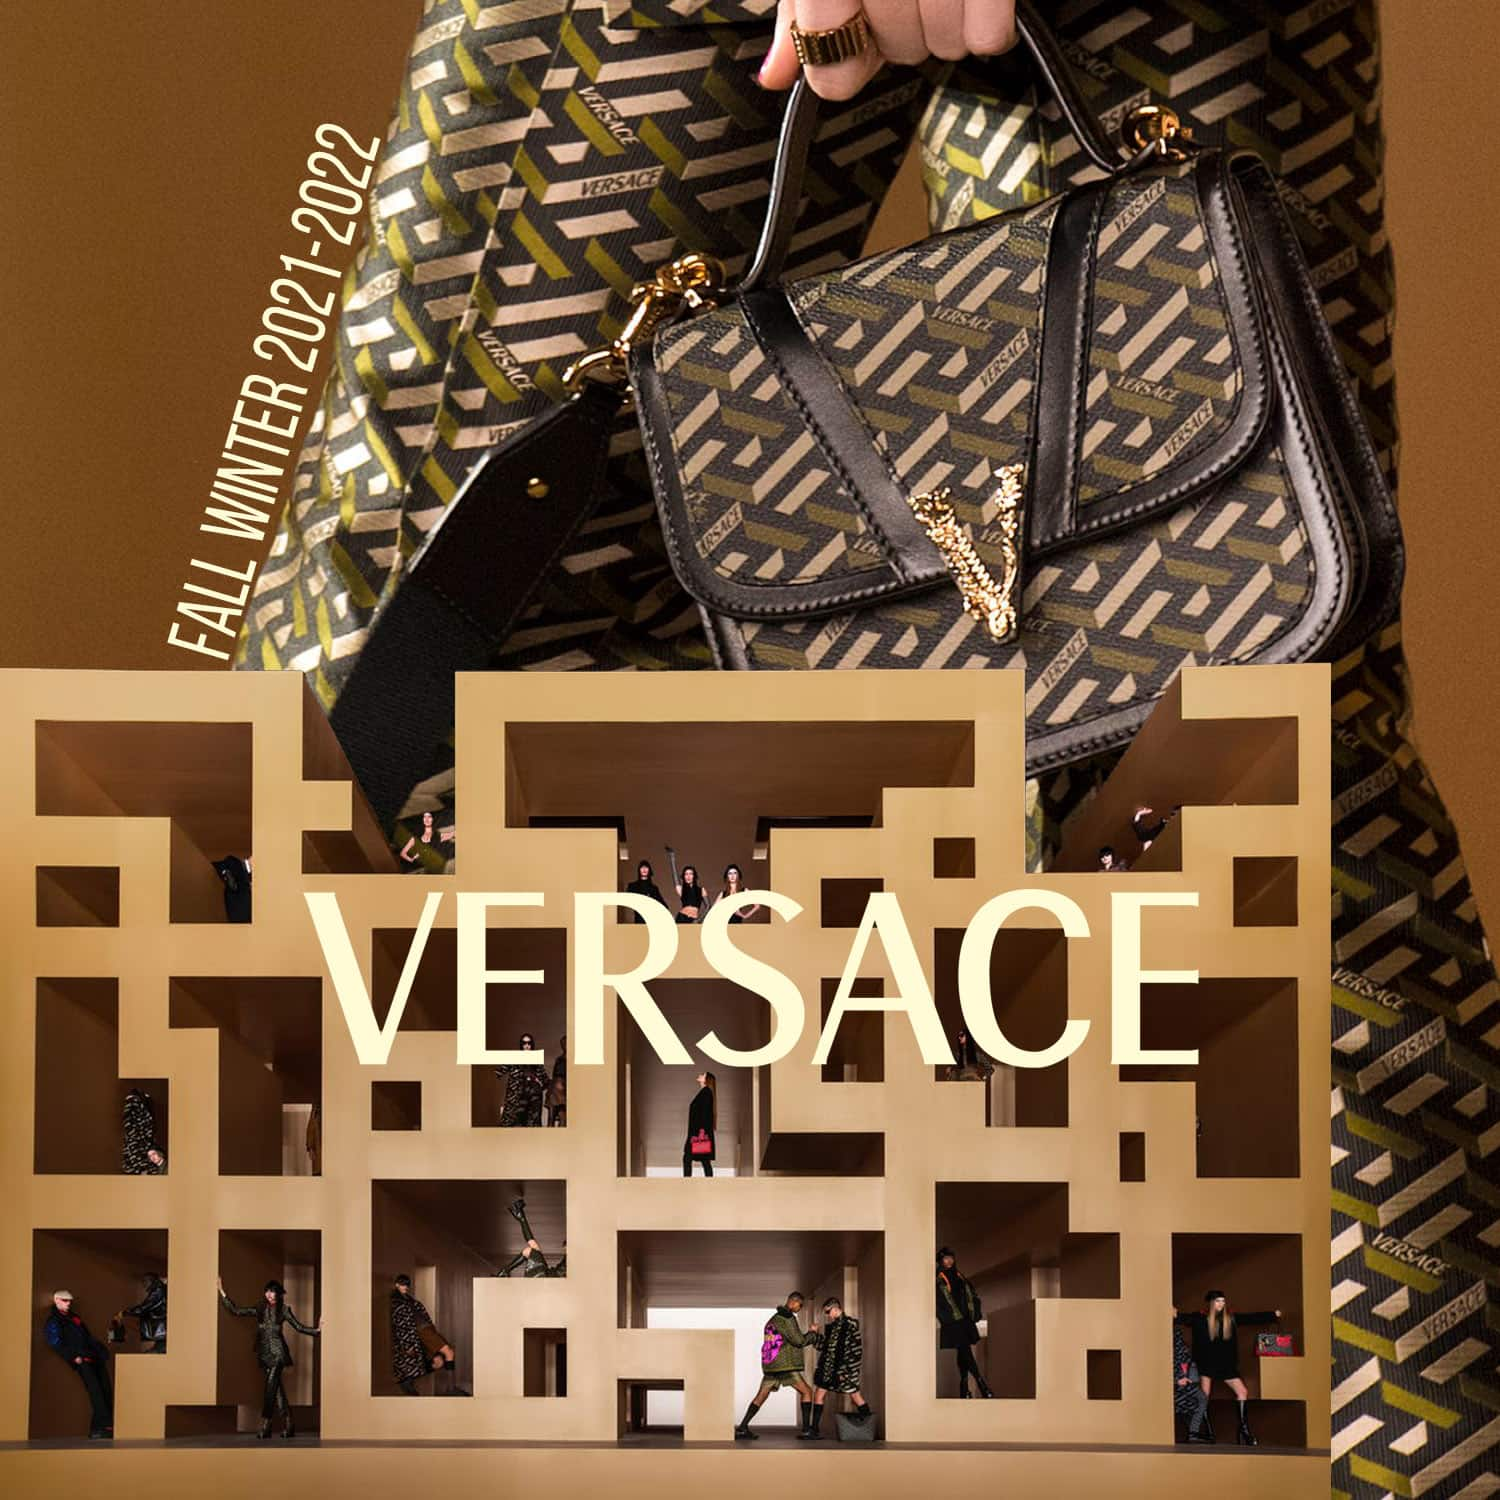 Versace Fall Winter 2021-2022 Paris by RUNWAY MAGAZINE